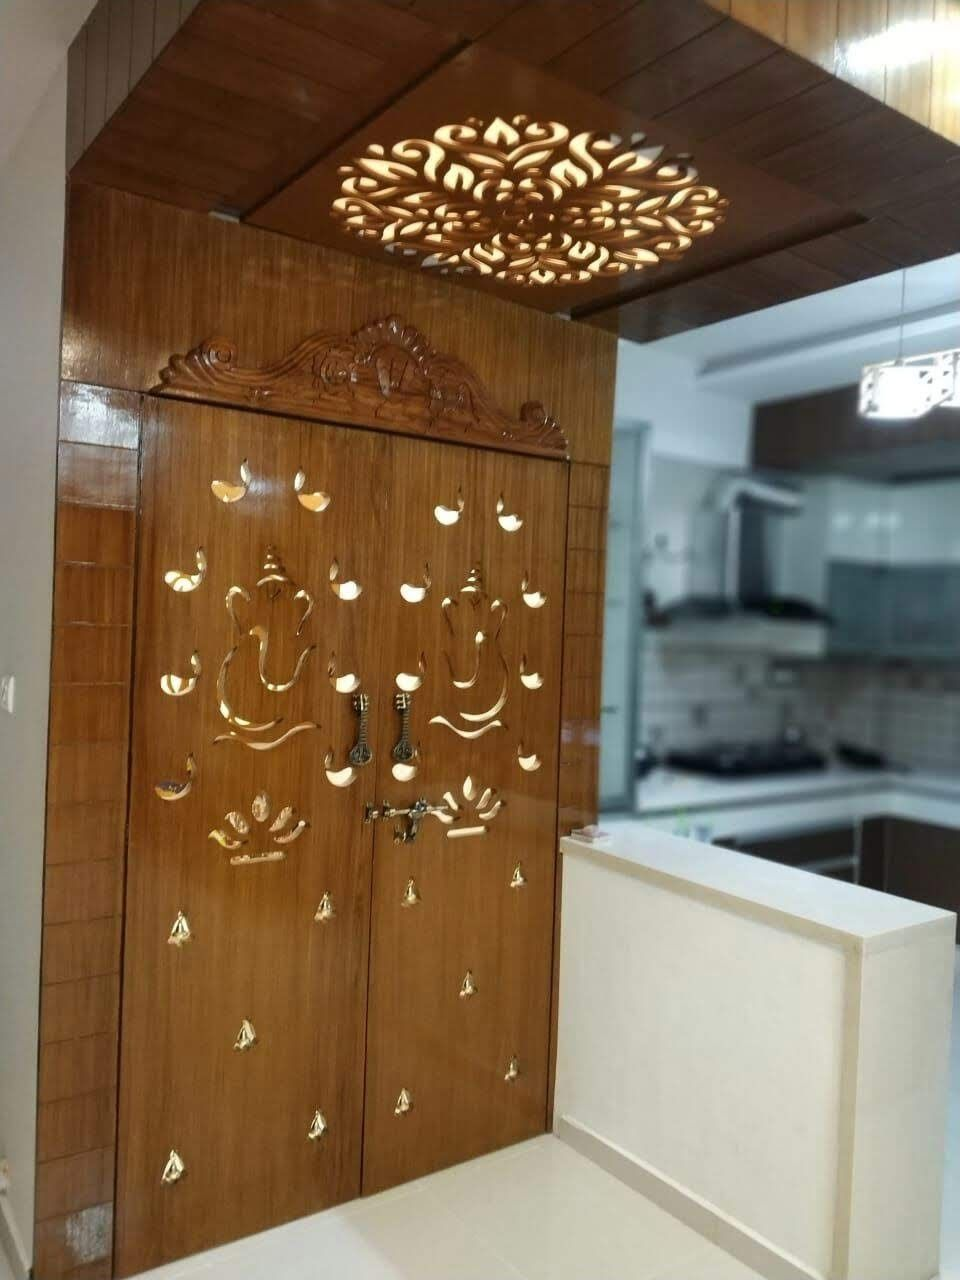 Pooja Room Door Designs Pooja Room: Pooja Room Door Design, Room Door Design